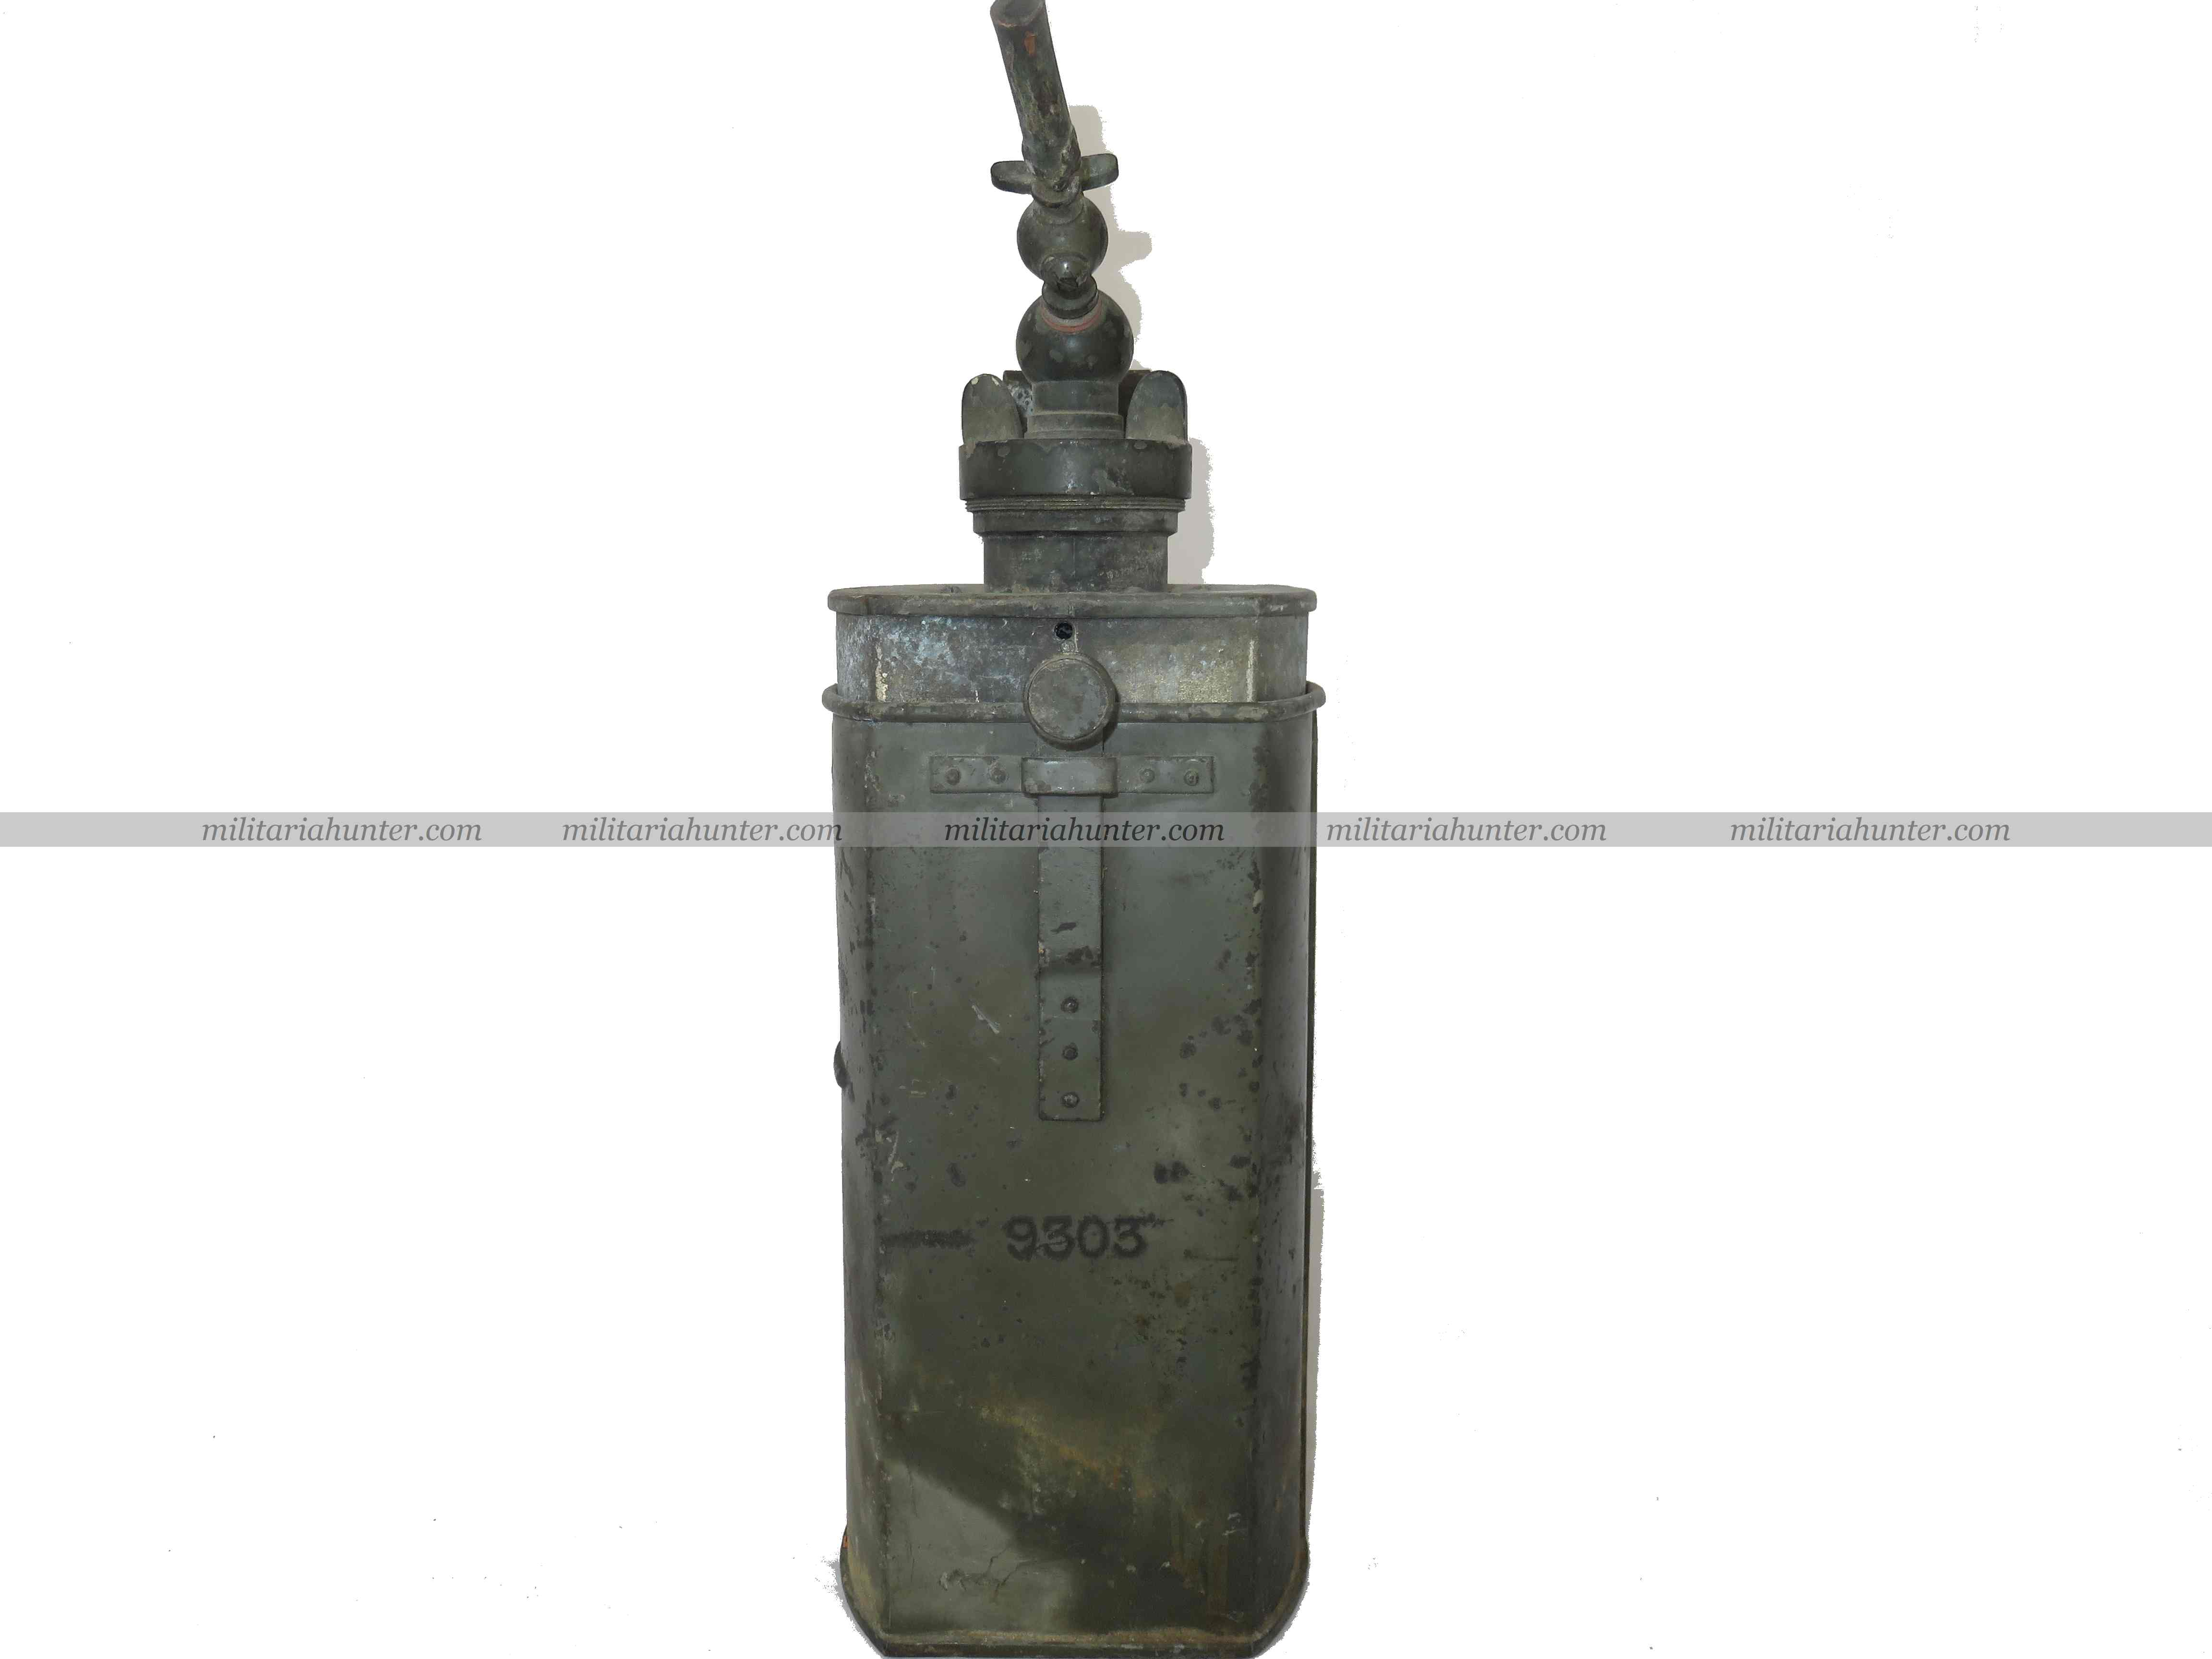 militaria : imperial german fieldgrey Acetylene generator for projector